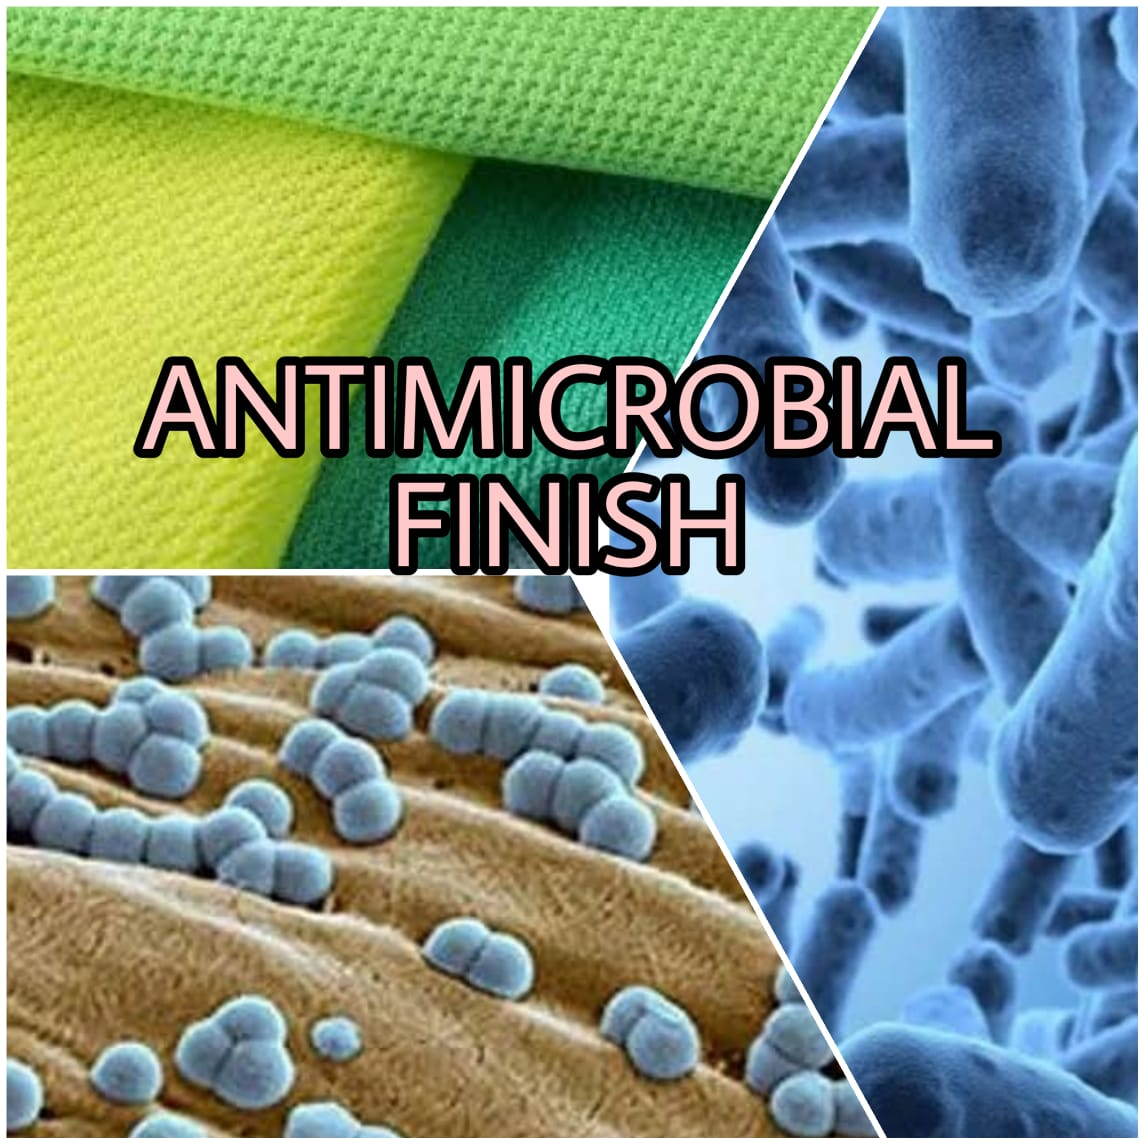 ANTIMICROBIAL FINISH – OVERVIEW